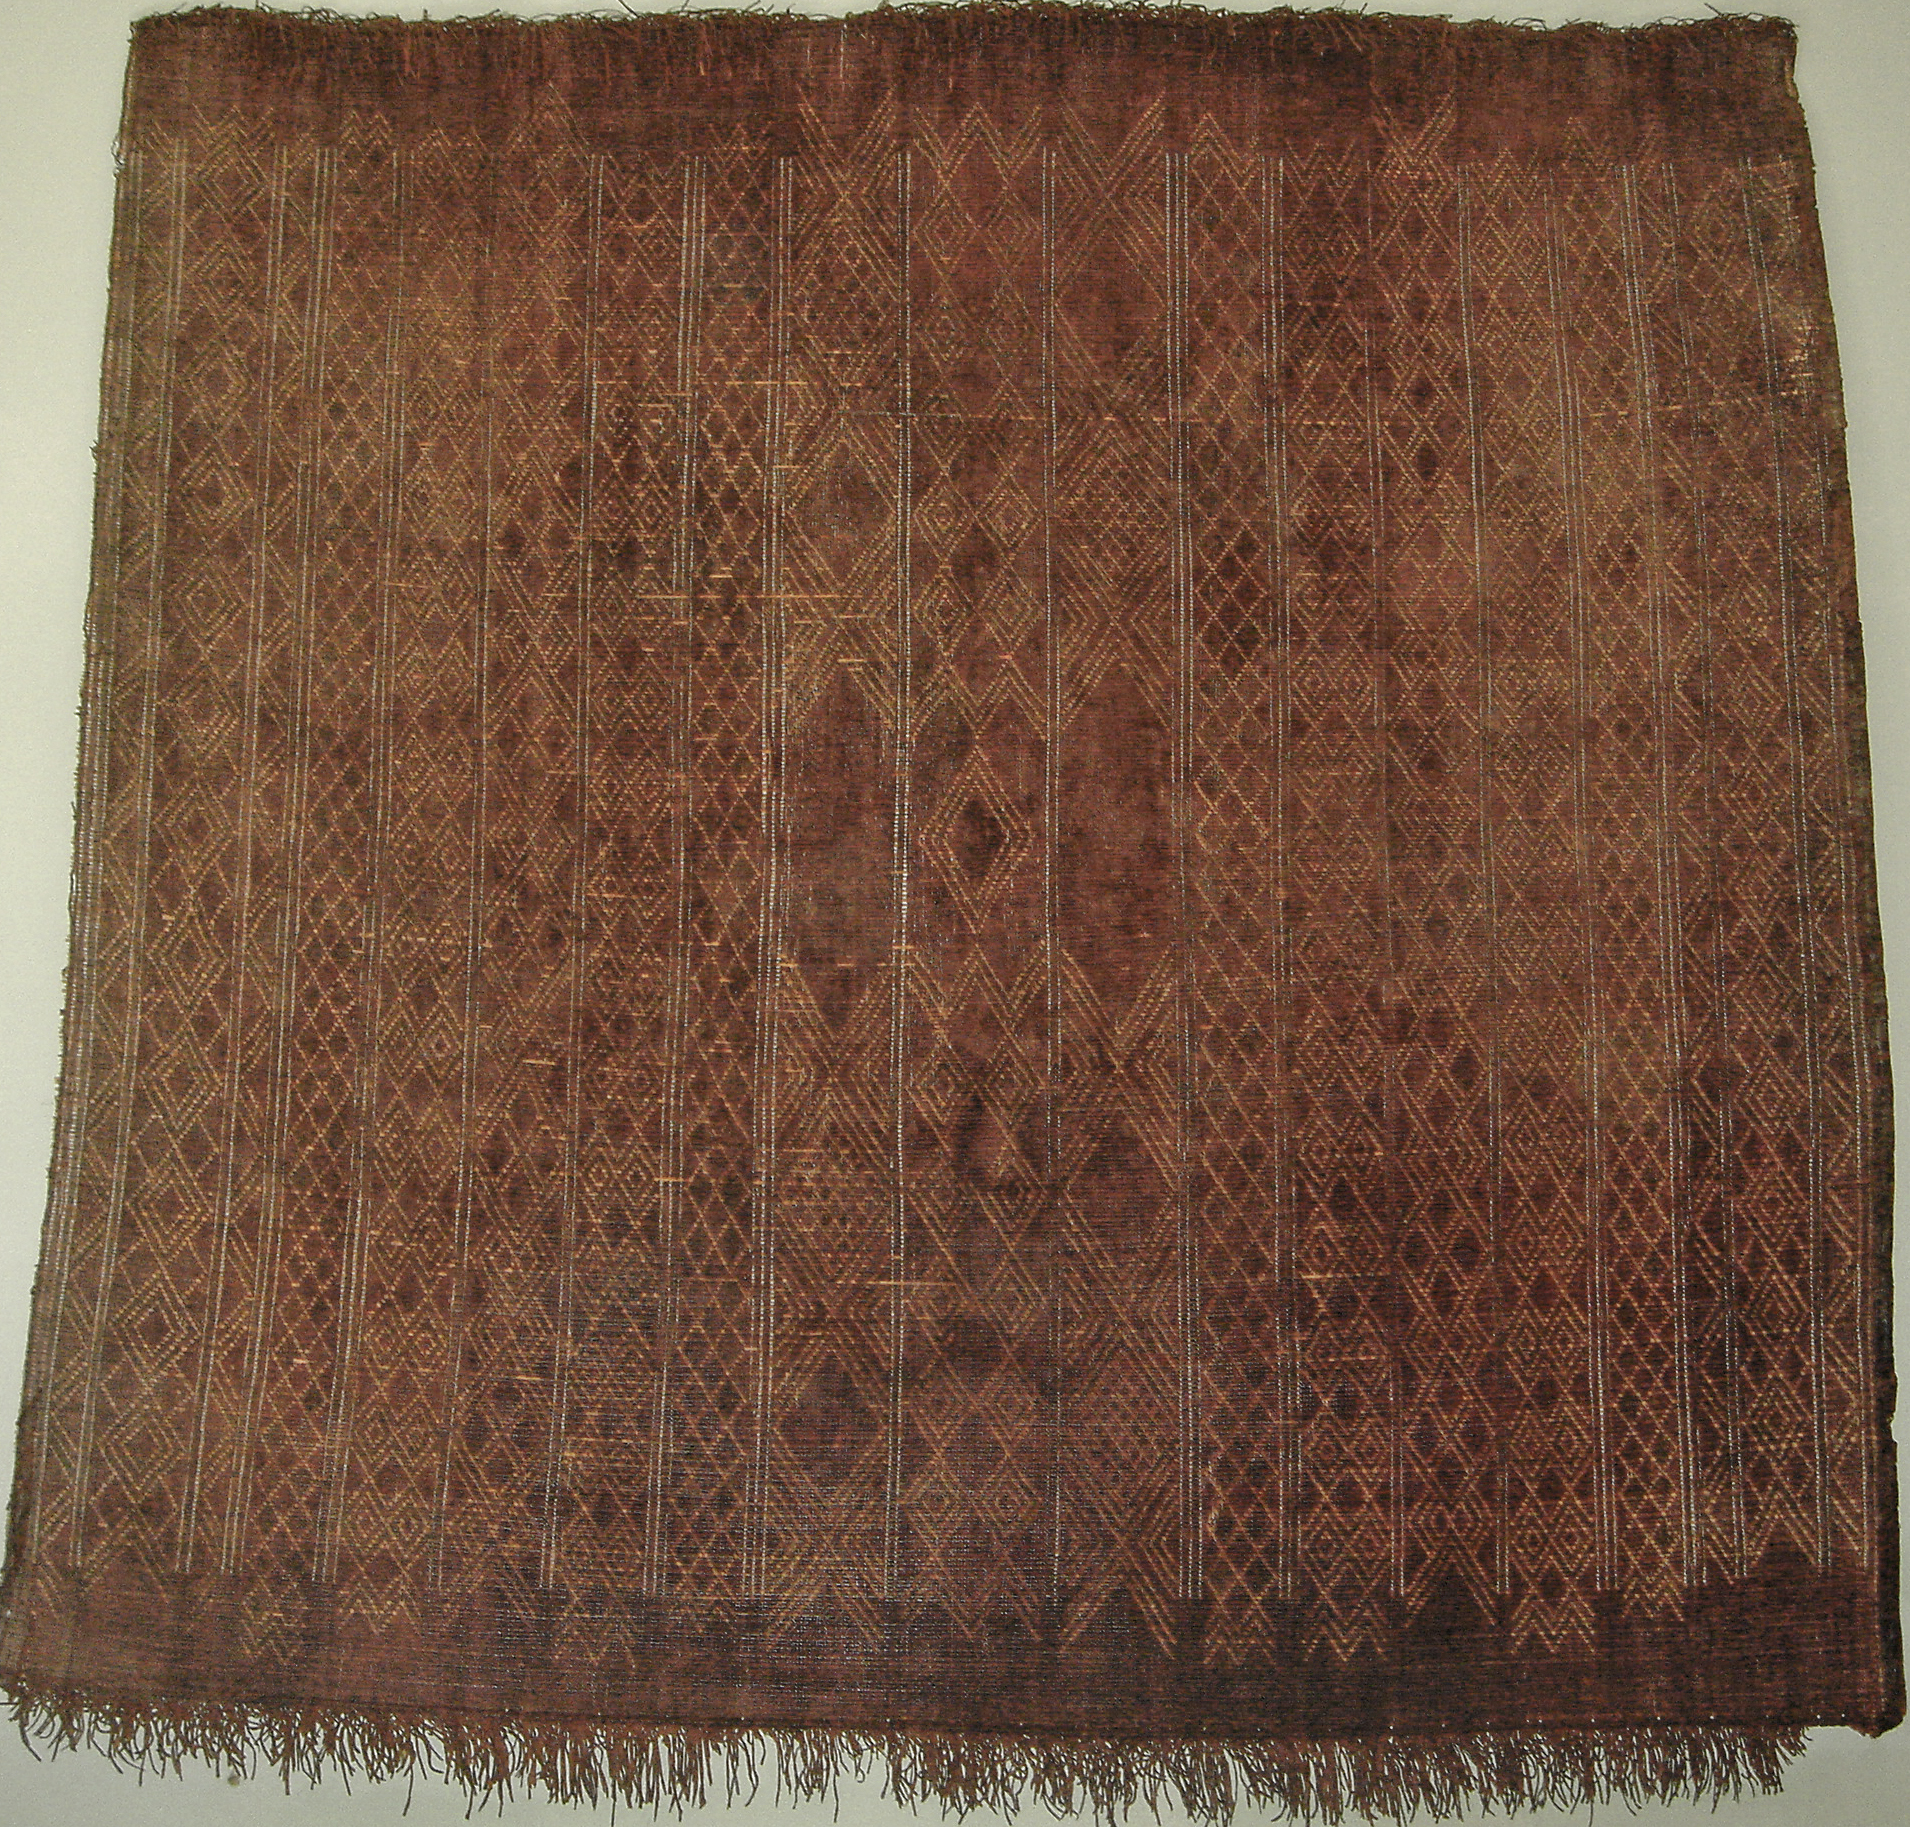 Man's Prayer Rug